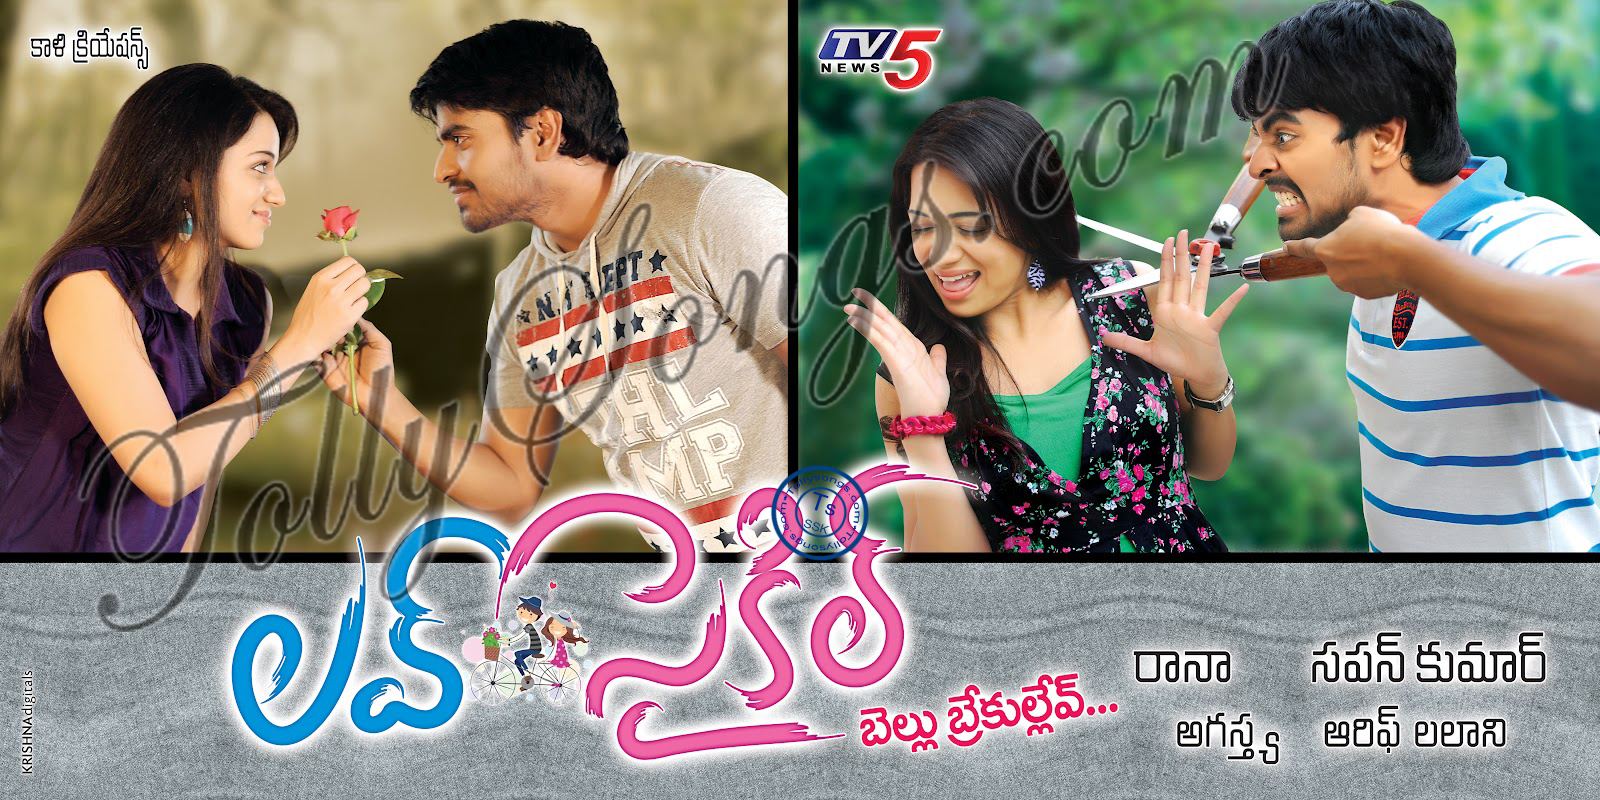 Tollysongscom Telugu Movie Online Songs Latest News Telugu